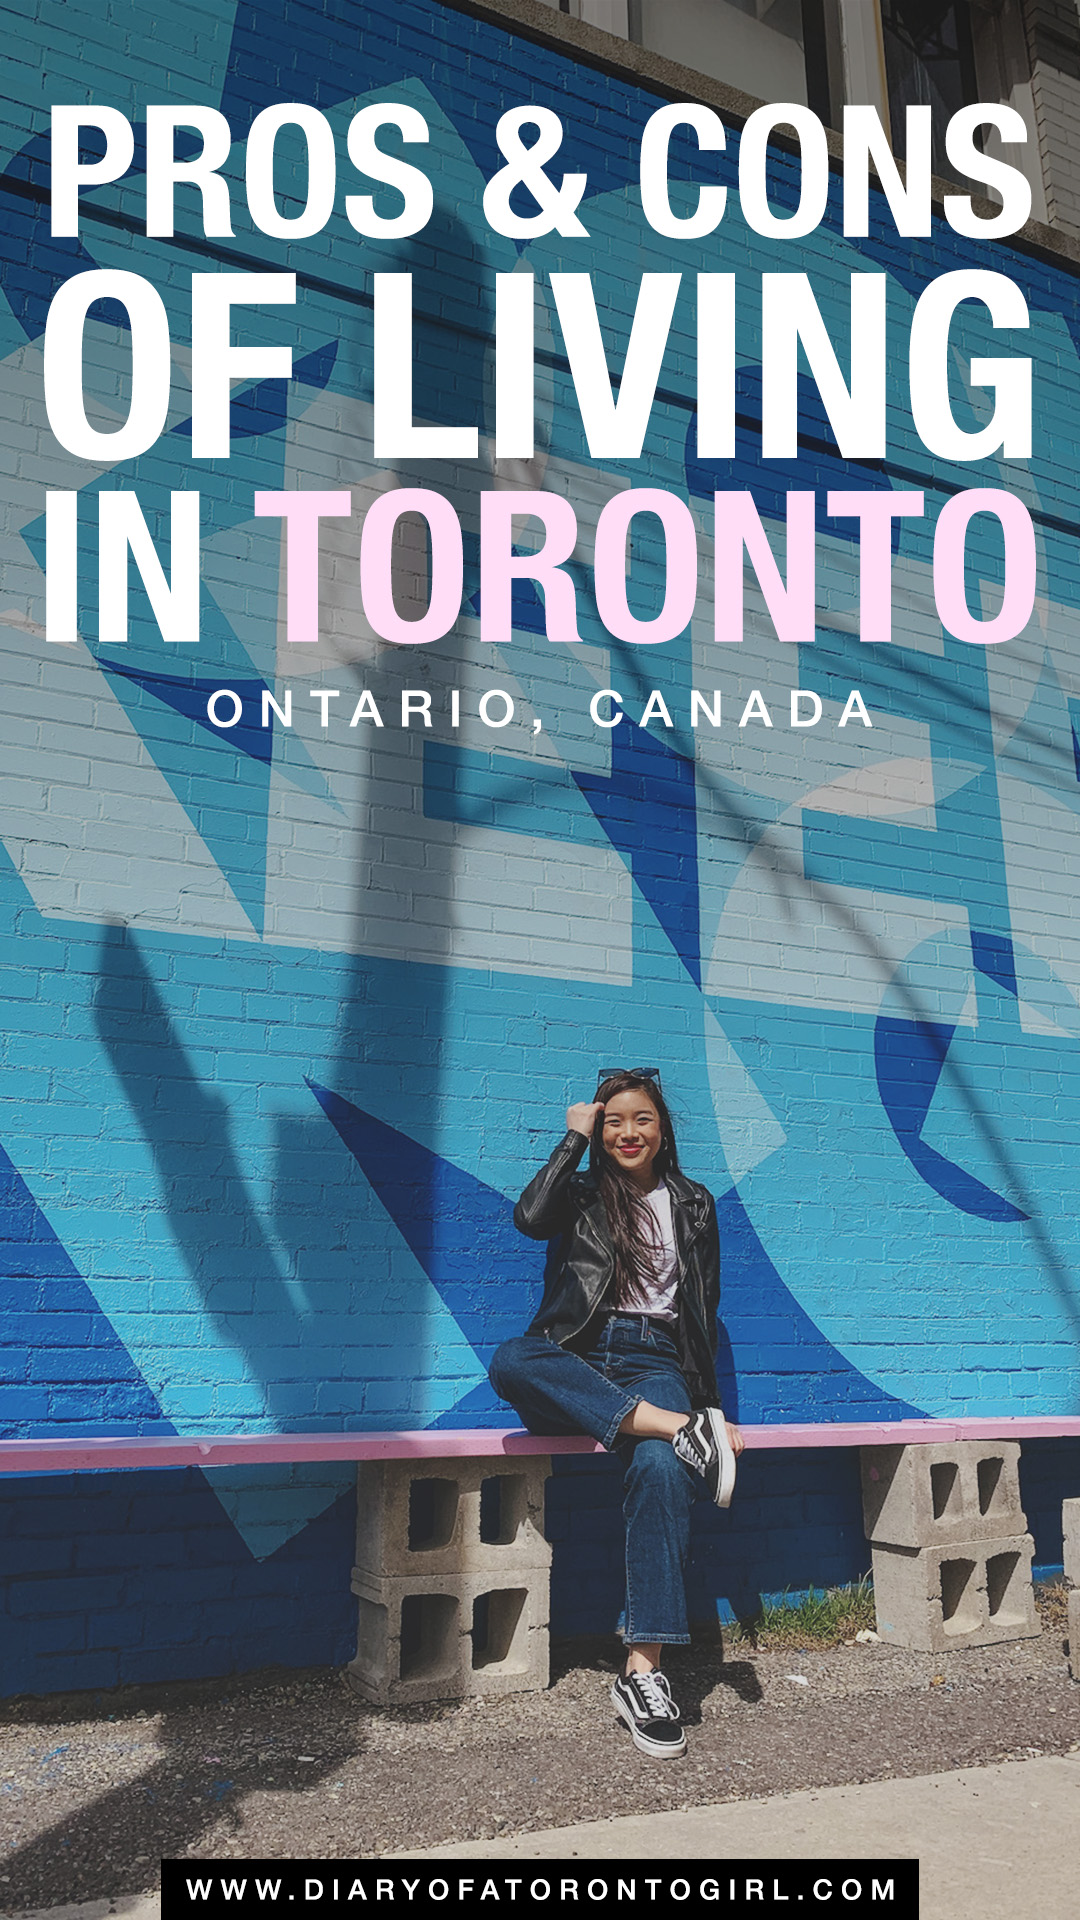 Pros and cons of living in Toronto